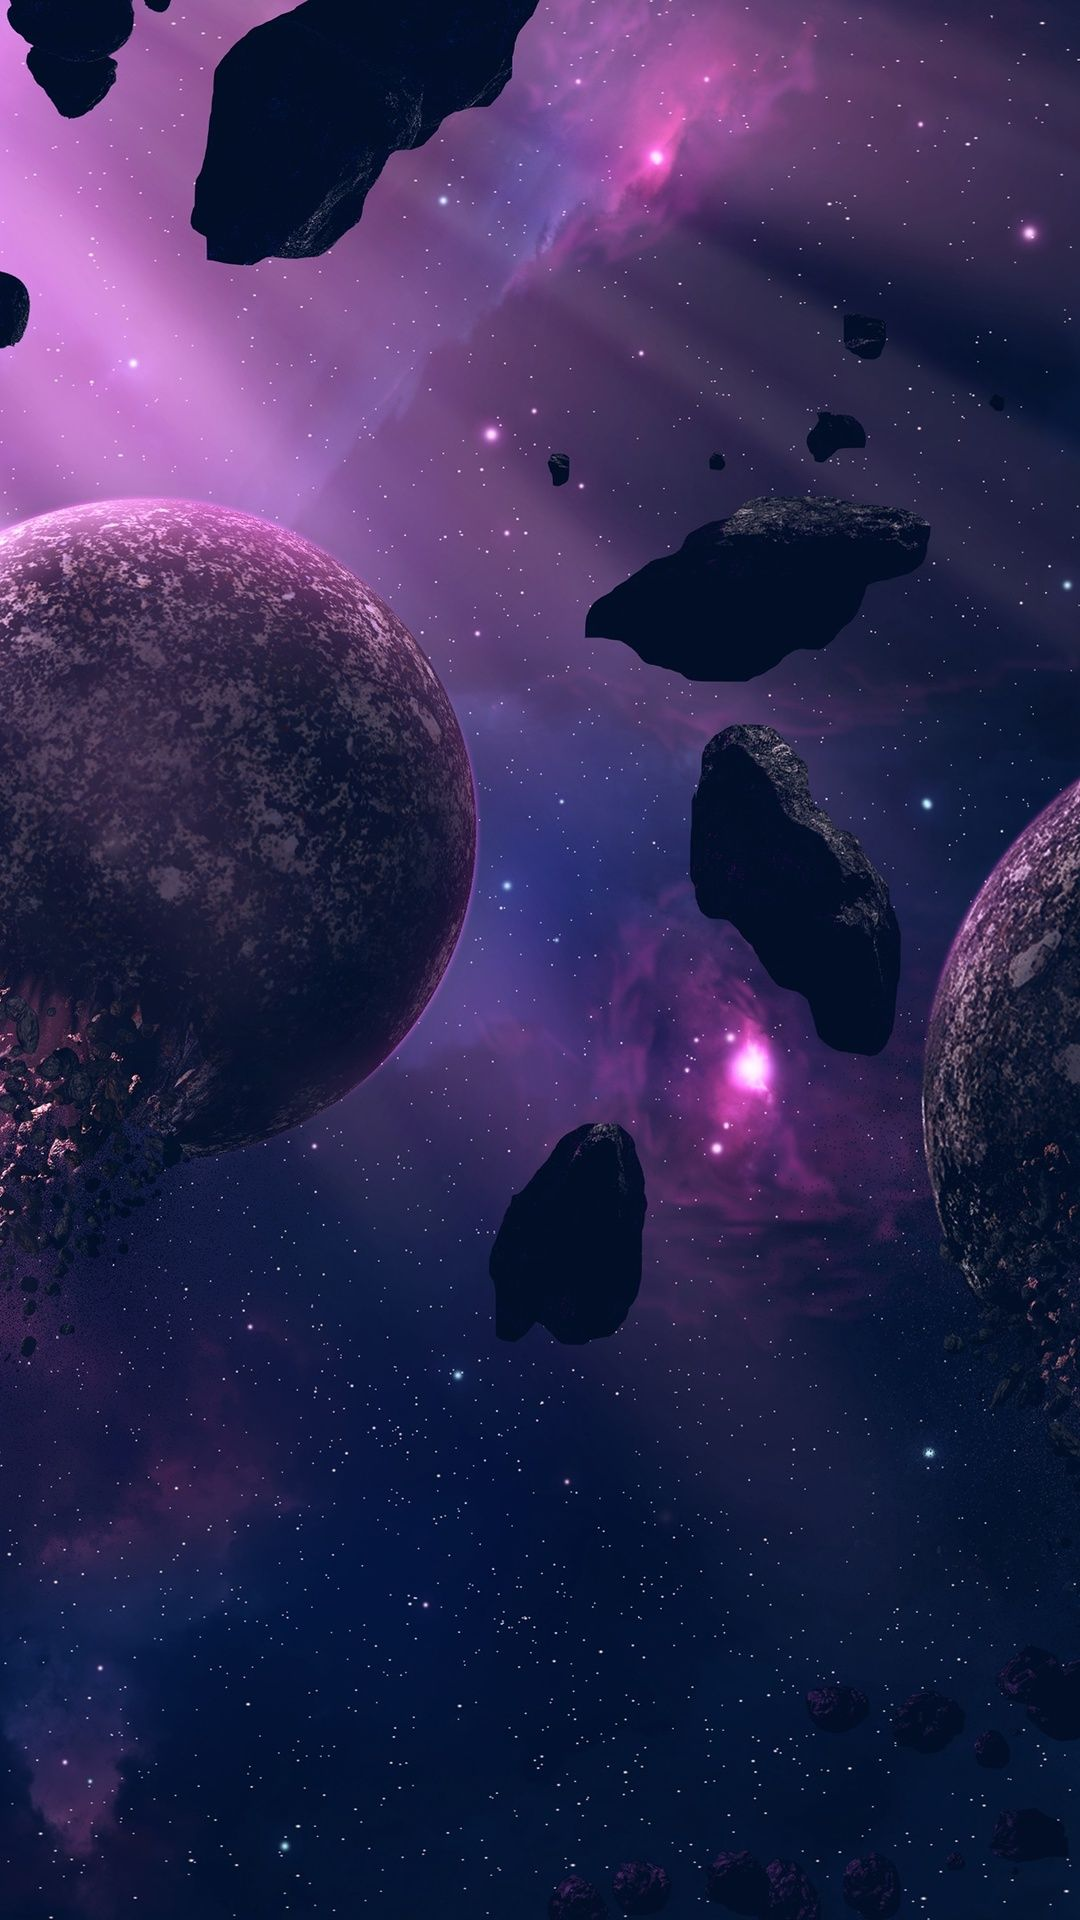 Outer Space Sky Violet Astronomical Object Purple Space In 2020 With Images Space Iphone Wallpaper Outer Space Wallpaper Wallpaper Space